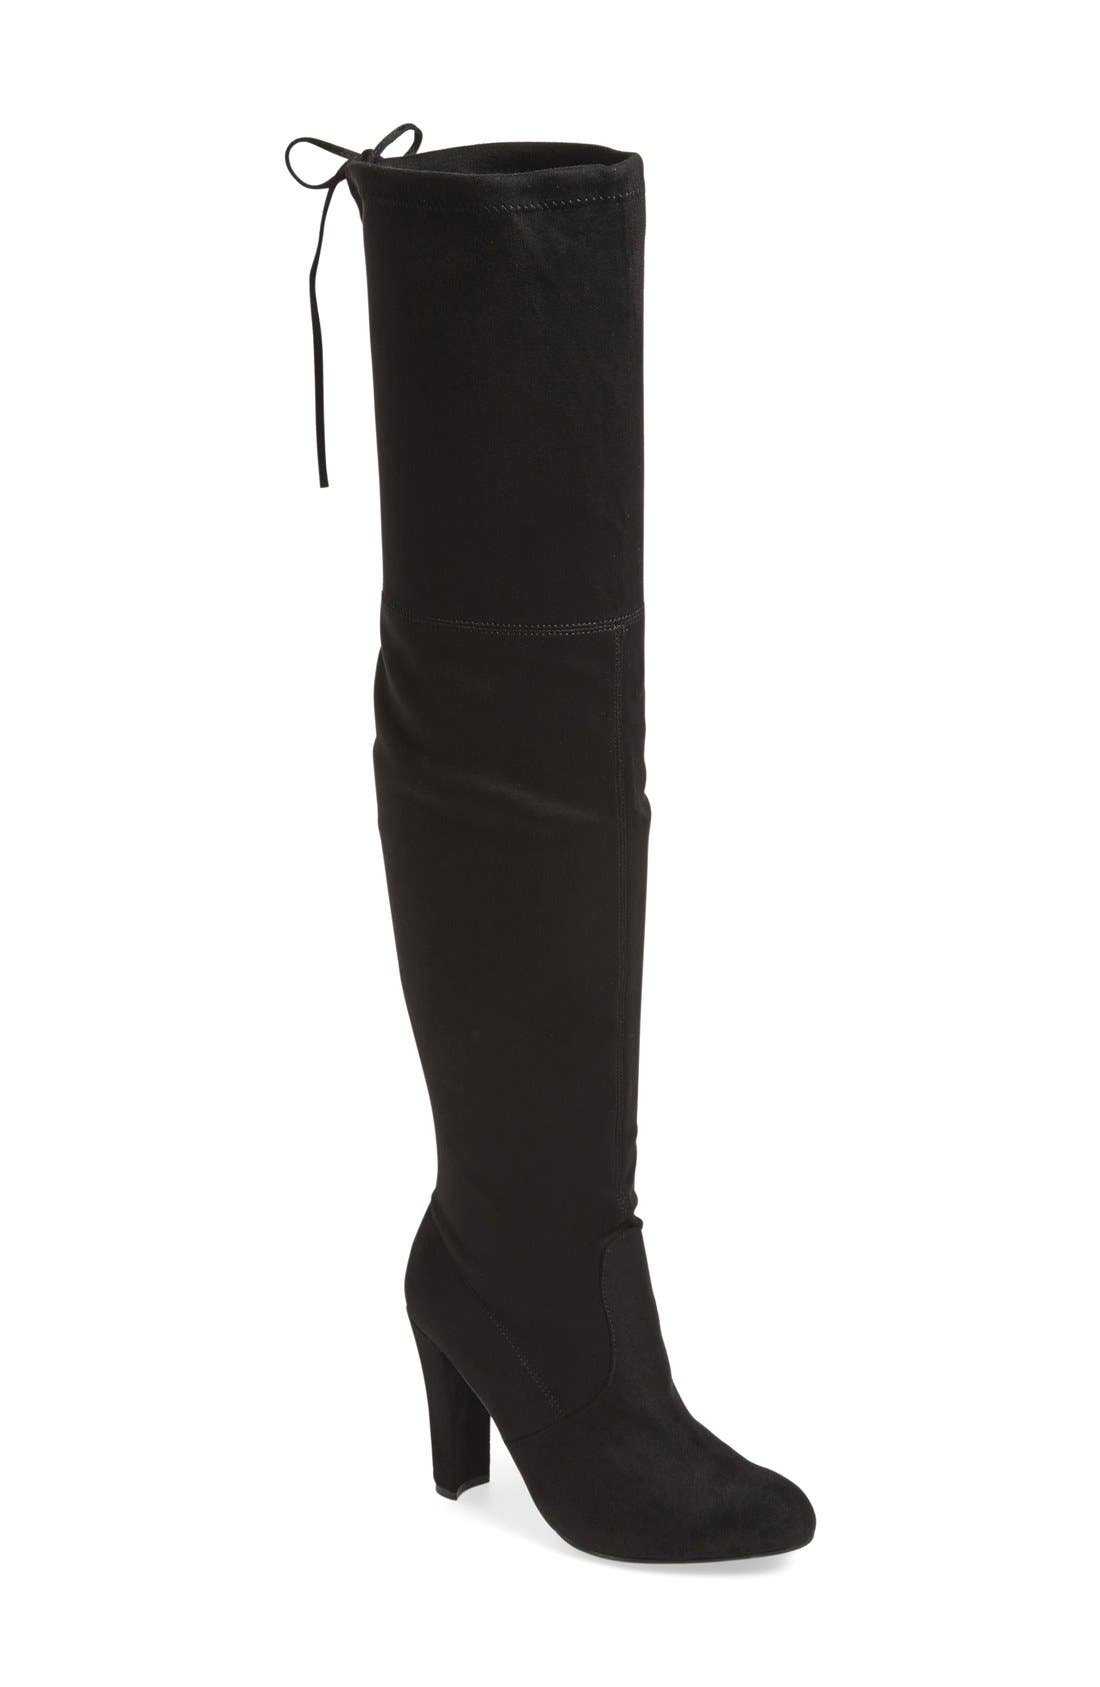 STEVE MADDEN, 'Gorgeous' Over the KneeBoot, Main thumbnail 1, color, 005